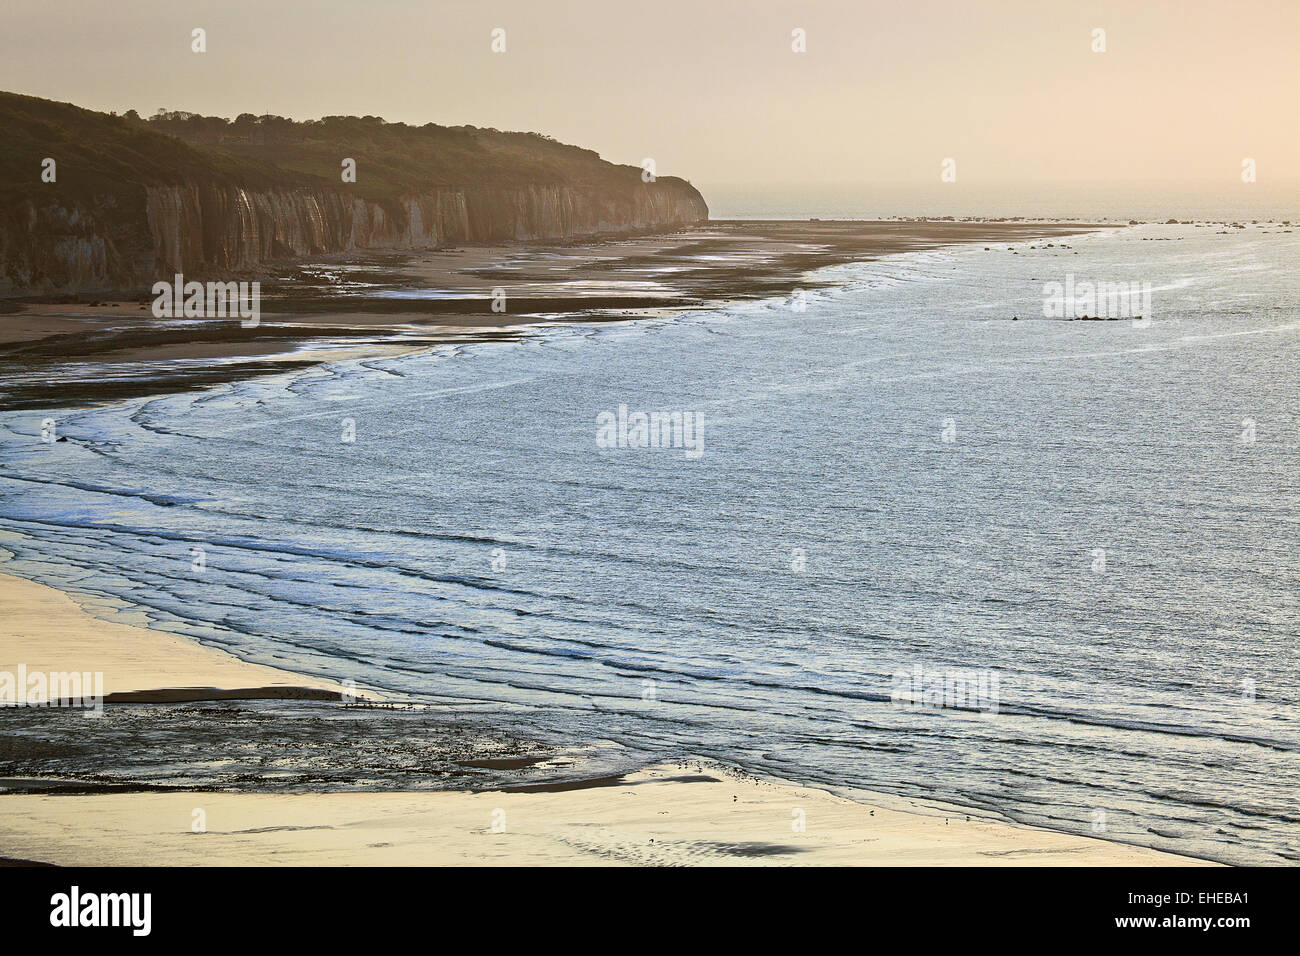 coast of Quiberville, Normandy, France - Stock Image